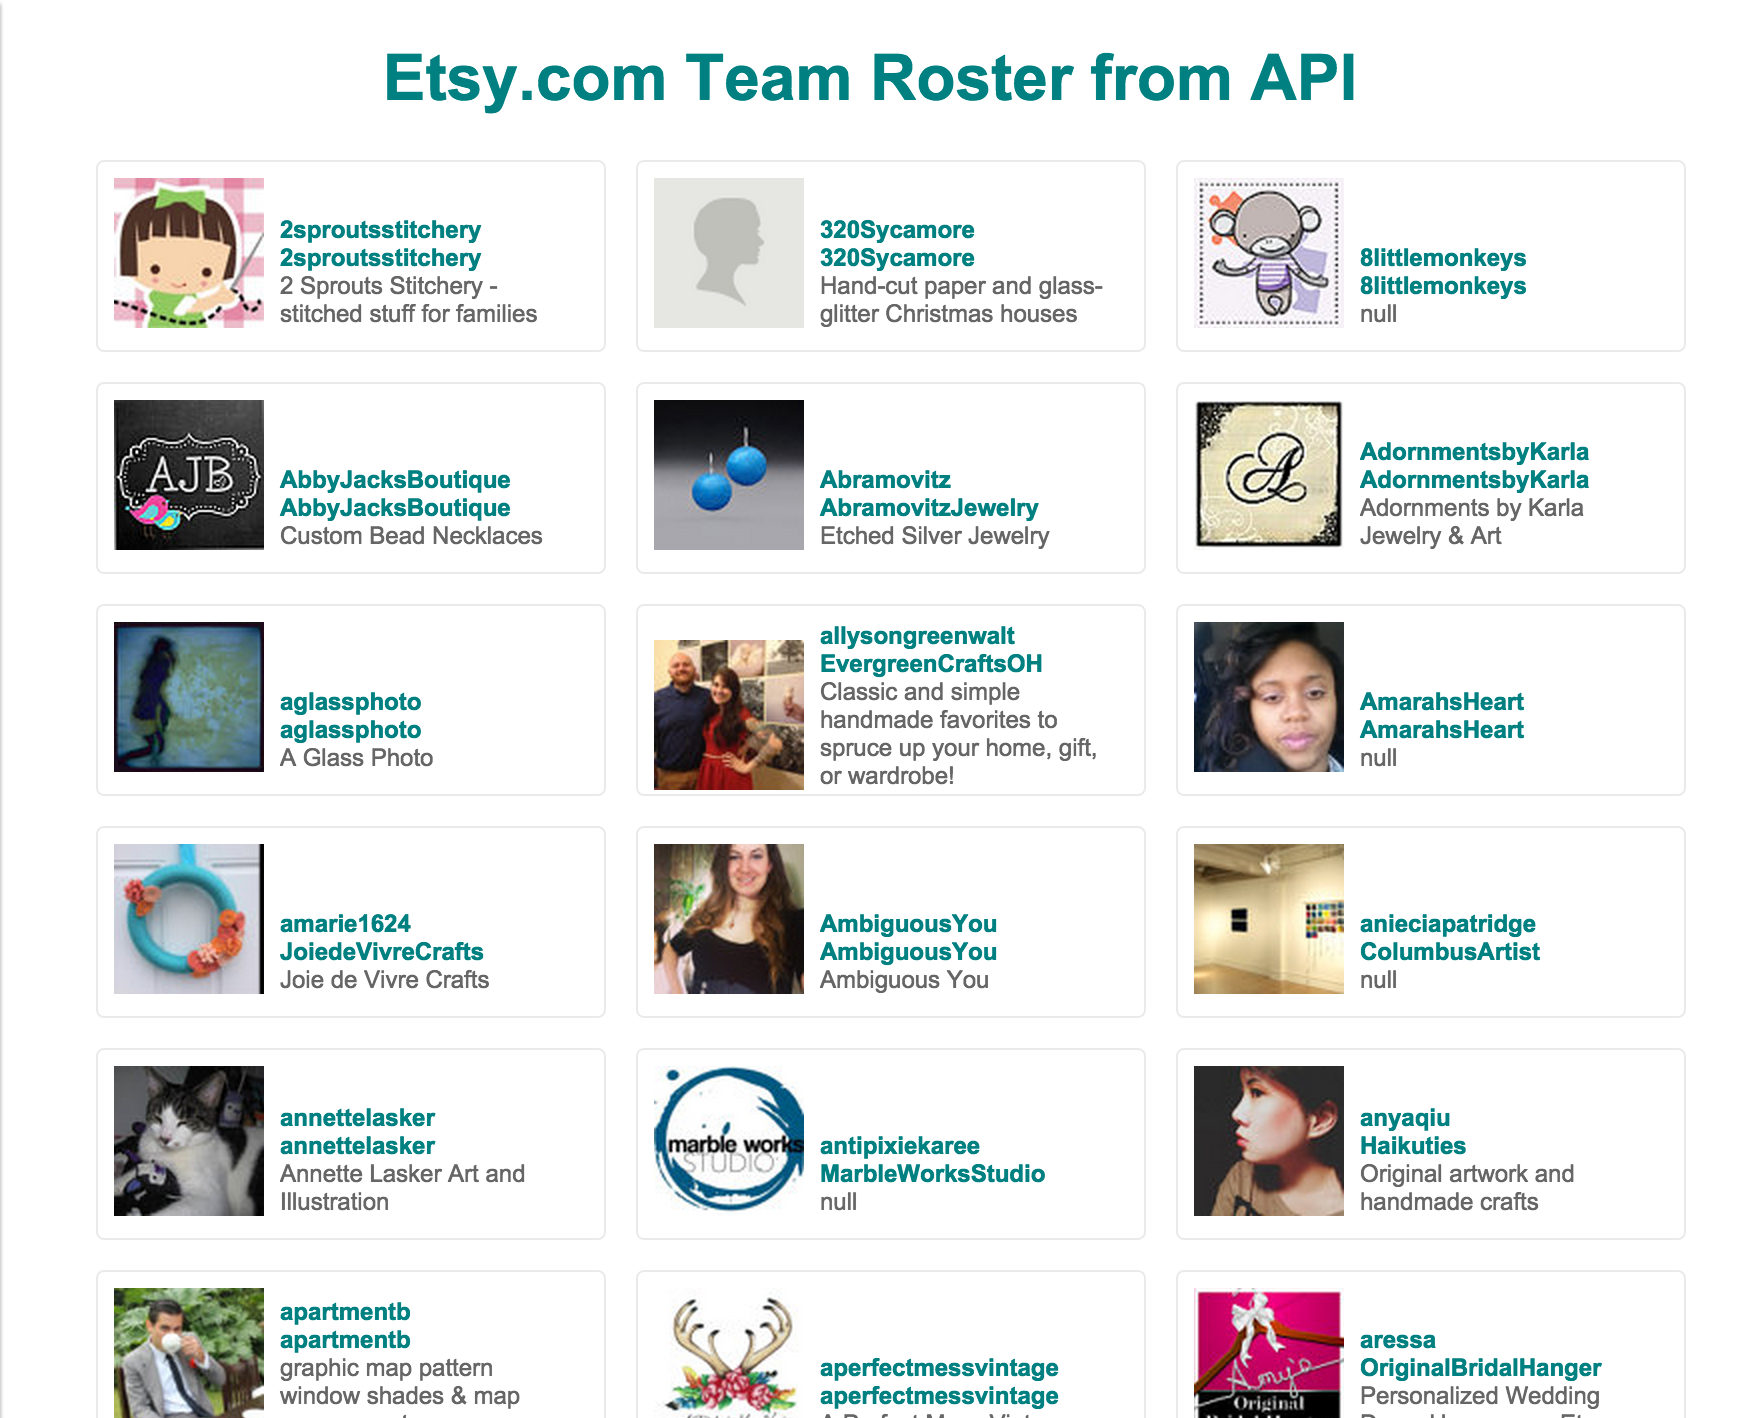 Sample of Team Roster display using Etsy.com API